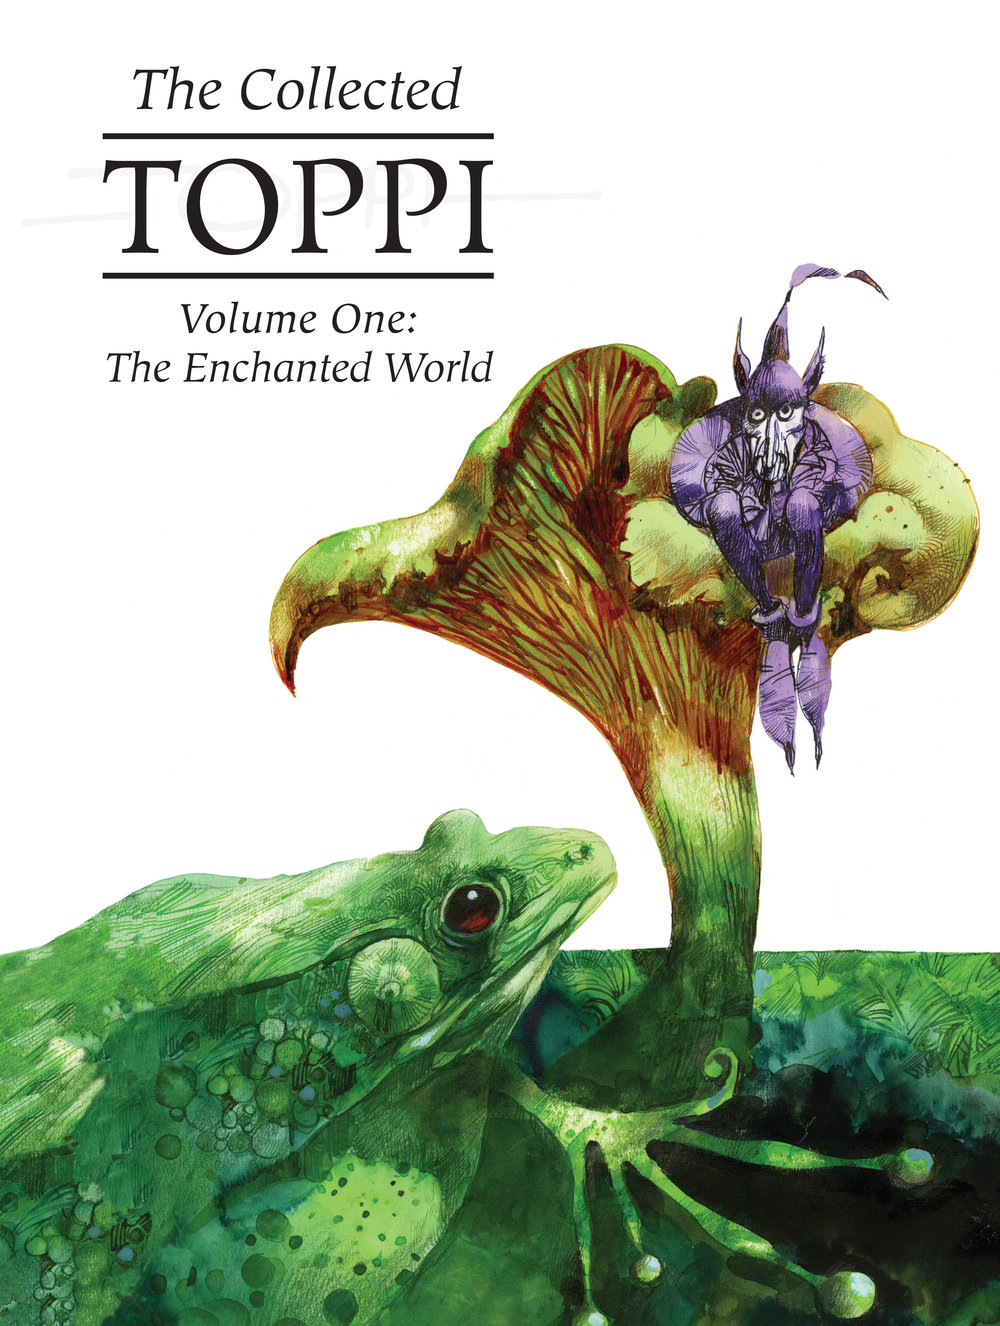 COLLECTED TOPPI HC 1 ENCHANTED WORLD.jpg